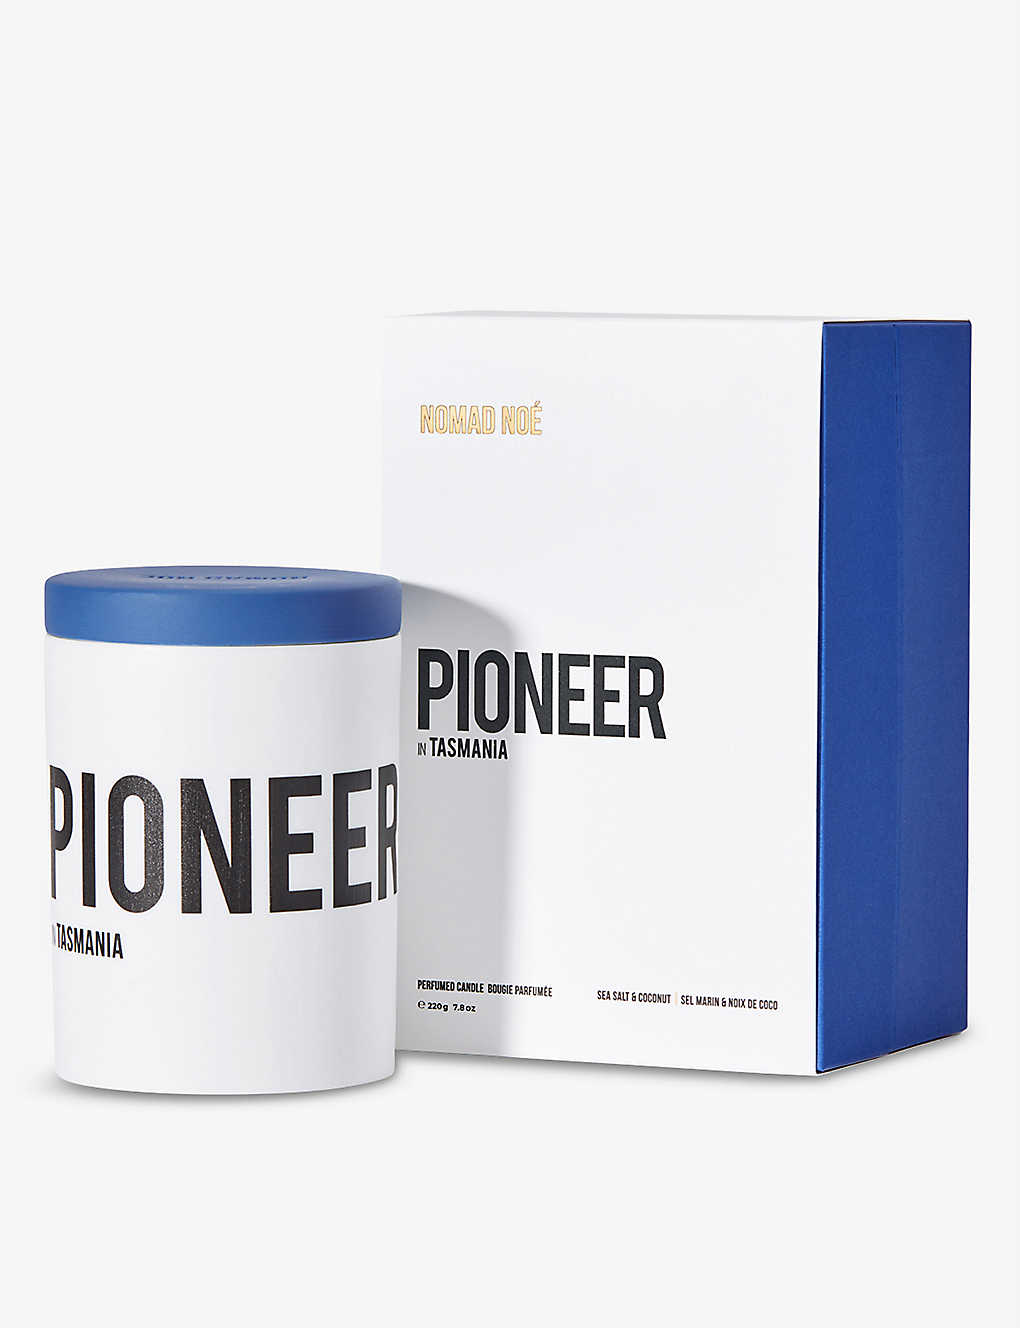 NOMAD NOE: Pioneer in Tasmania scented candle 220g